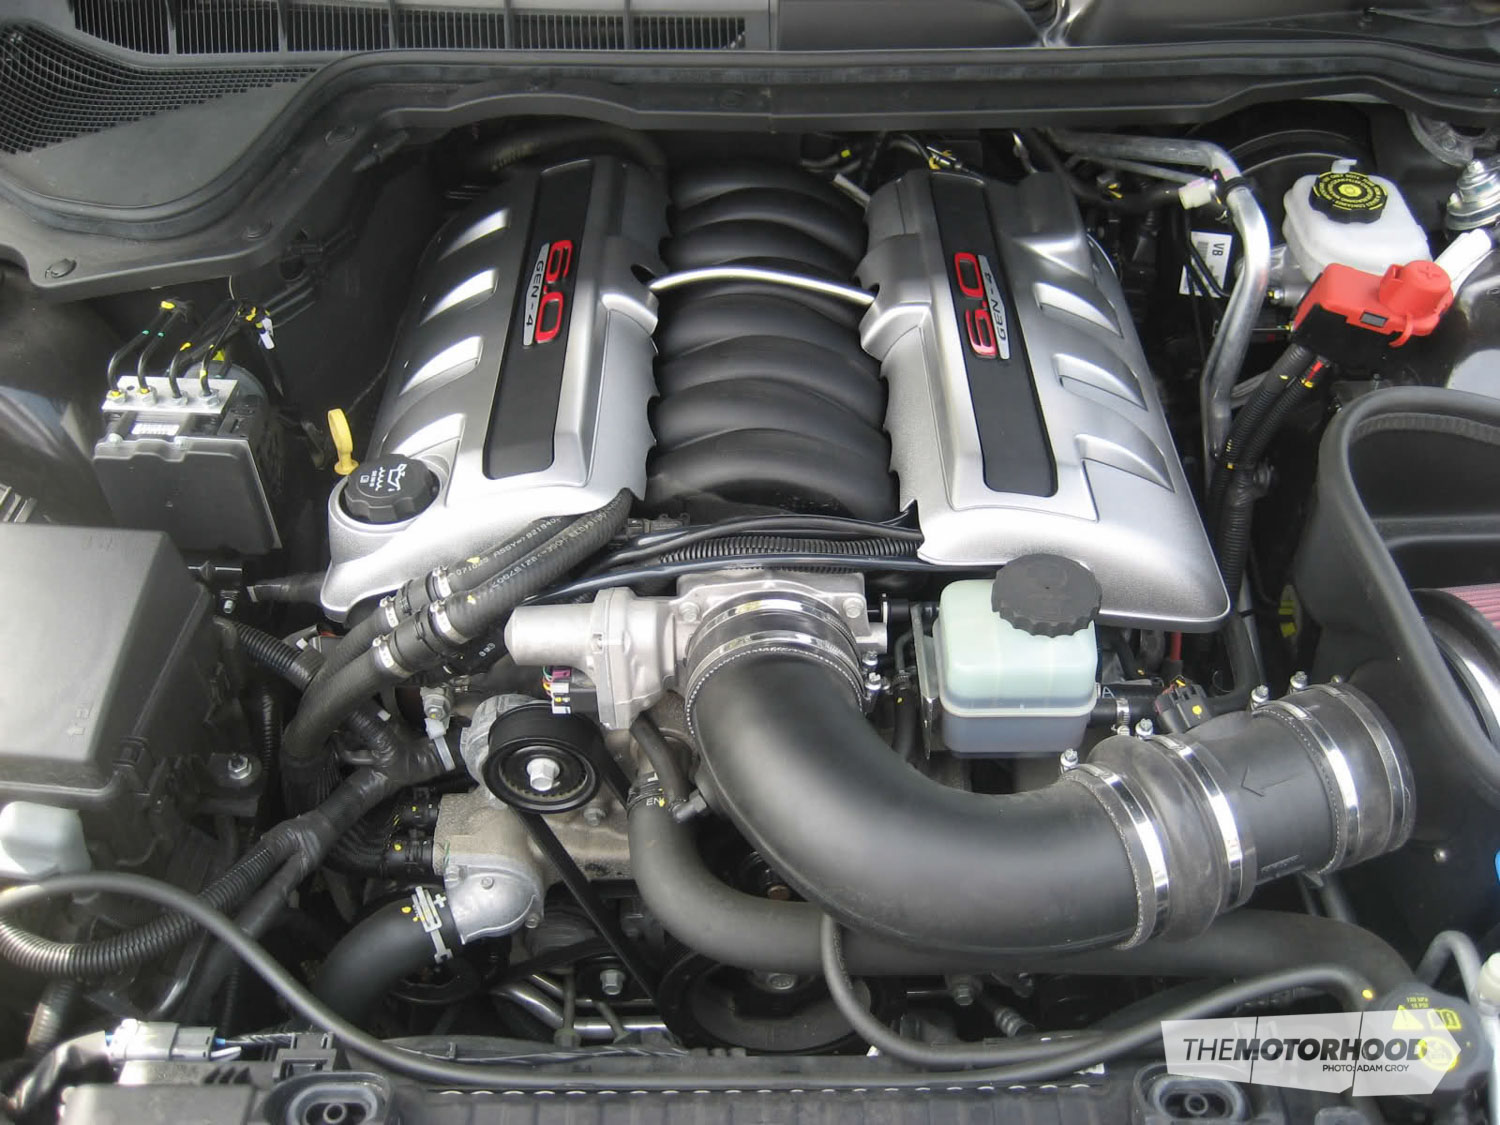 A comprehensive guide to the LS engine family — The Motorhood